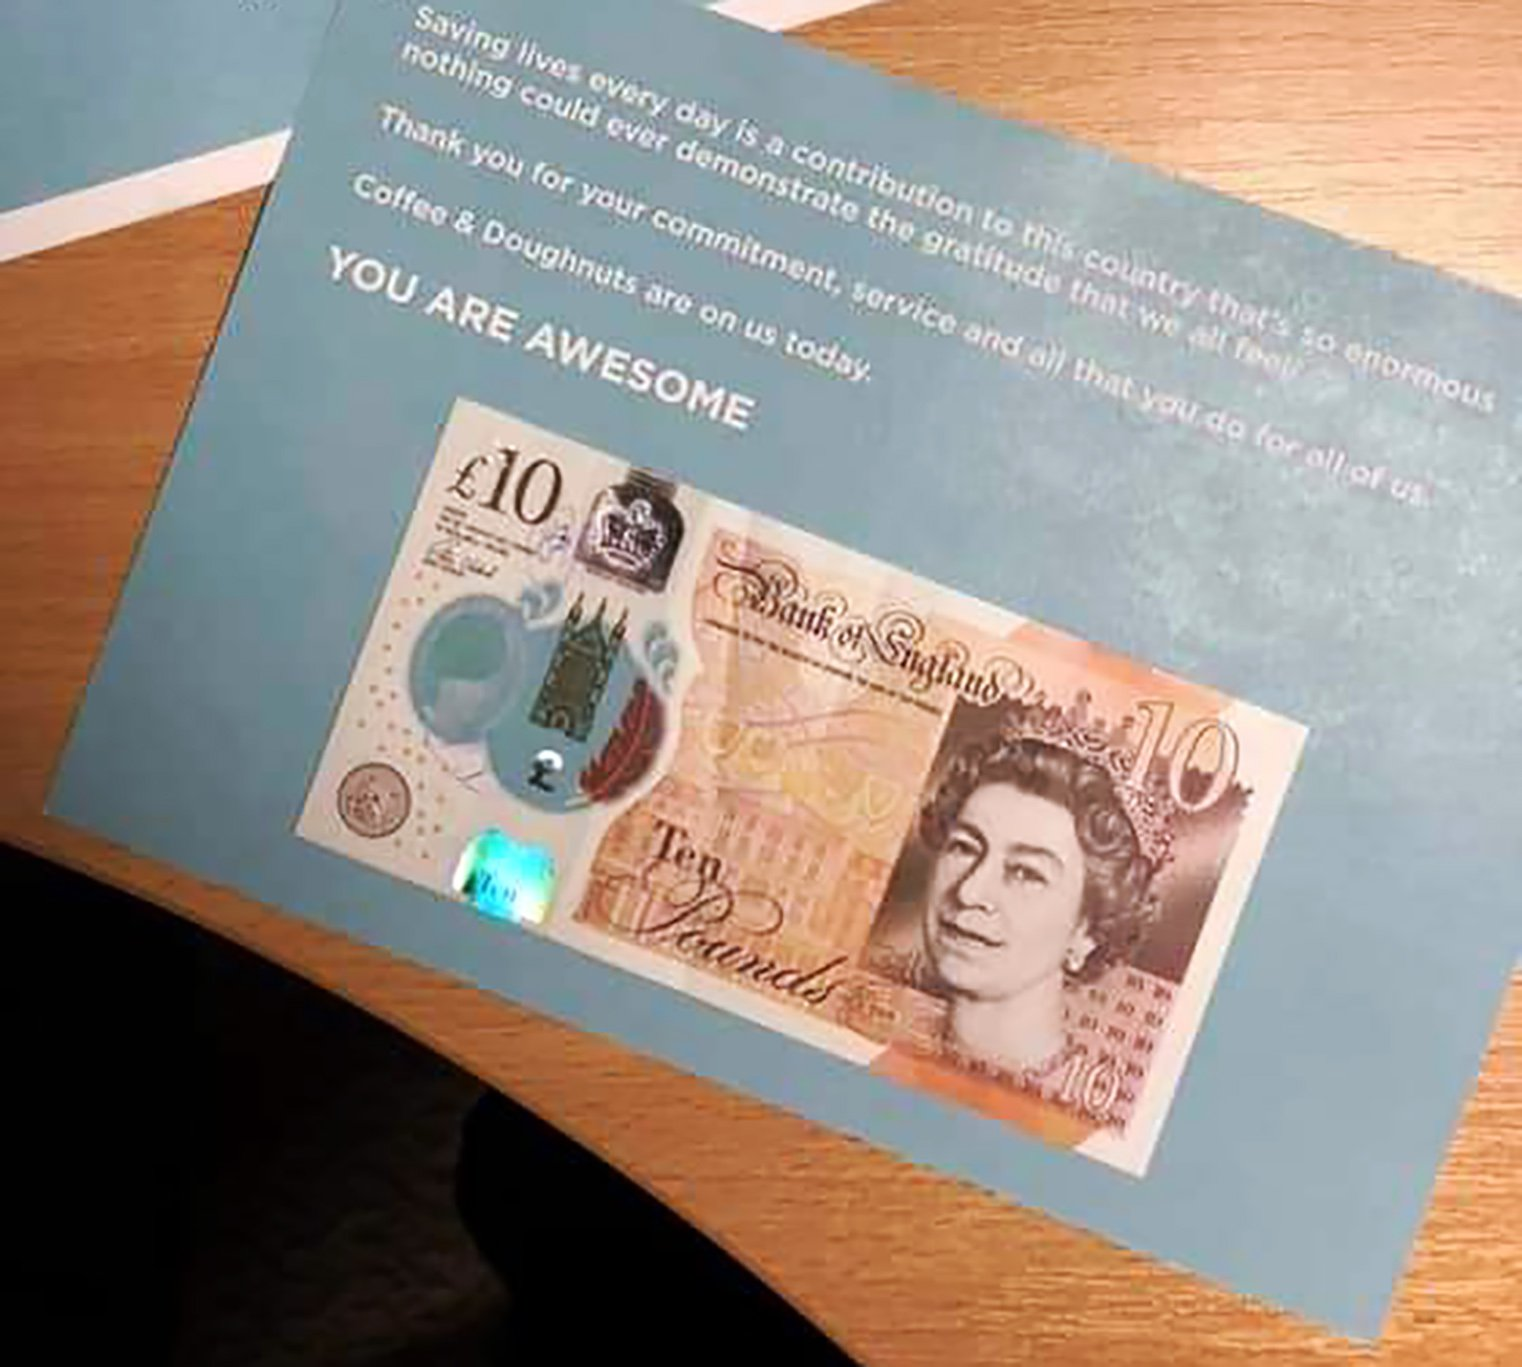 WESSEX NEWS AGENCY Jim Hardy email news@britishnews.co.uk mobile 07501 221880 STORY CATCHLINE: SCROOGE A mystery Santa is pinning tenners to ambulance windscreens...but Scrooge bosses are ordering the 999 mercy call crews to hand over the dosh. Pic shows the note with the tenners